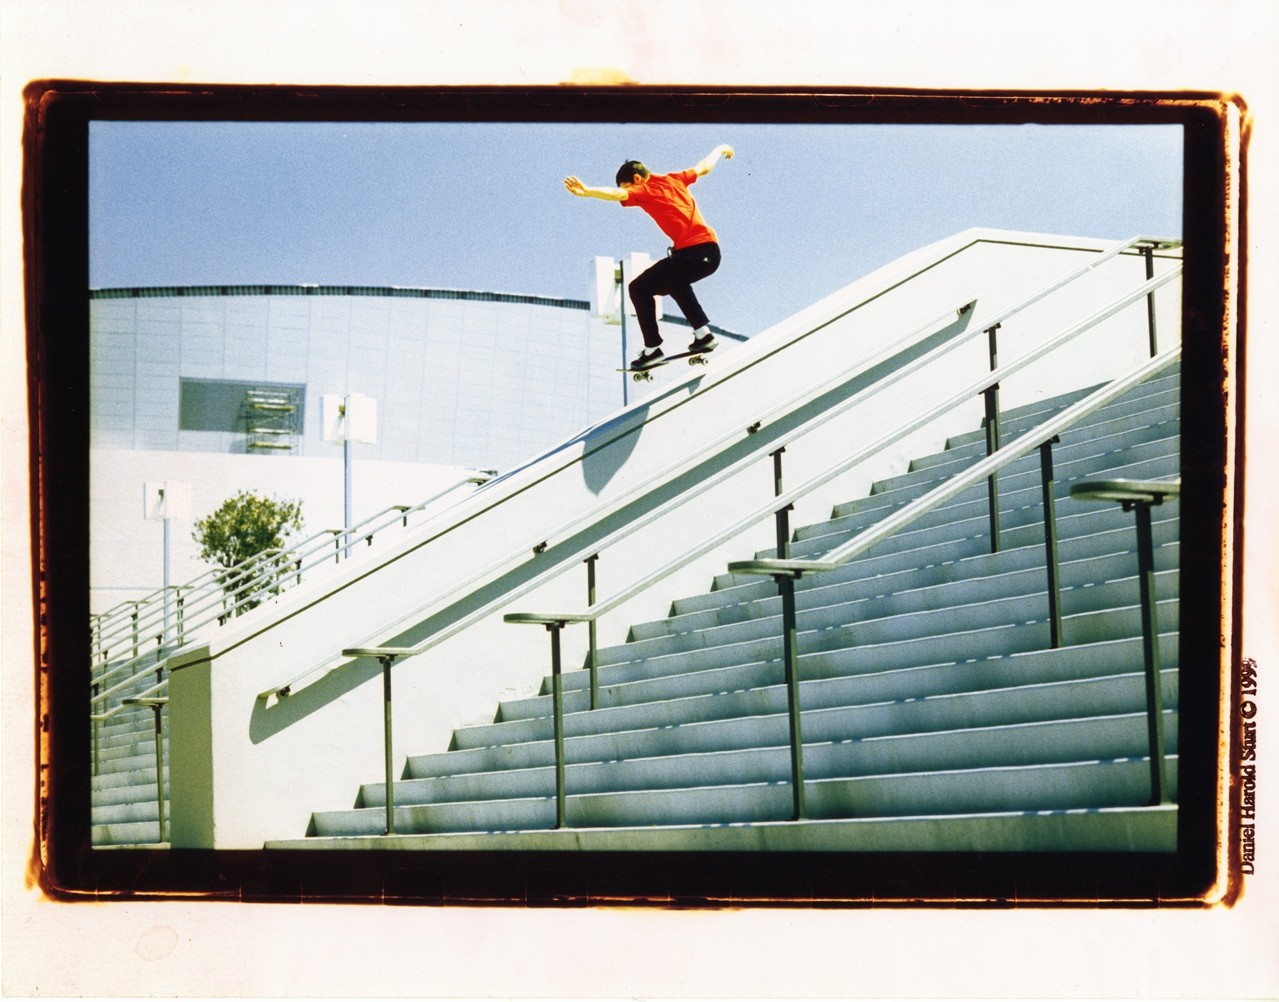 VANS COMMEMORATES 20 YEARS OF GEOFF ROWLEY'S INFLUENCE